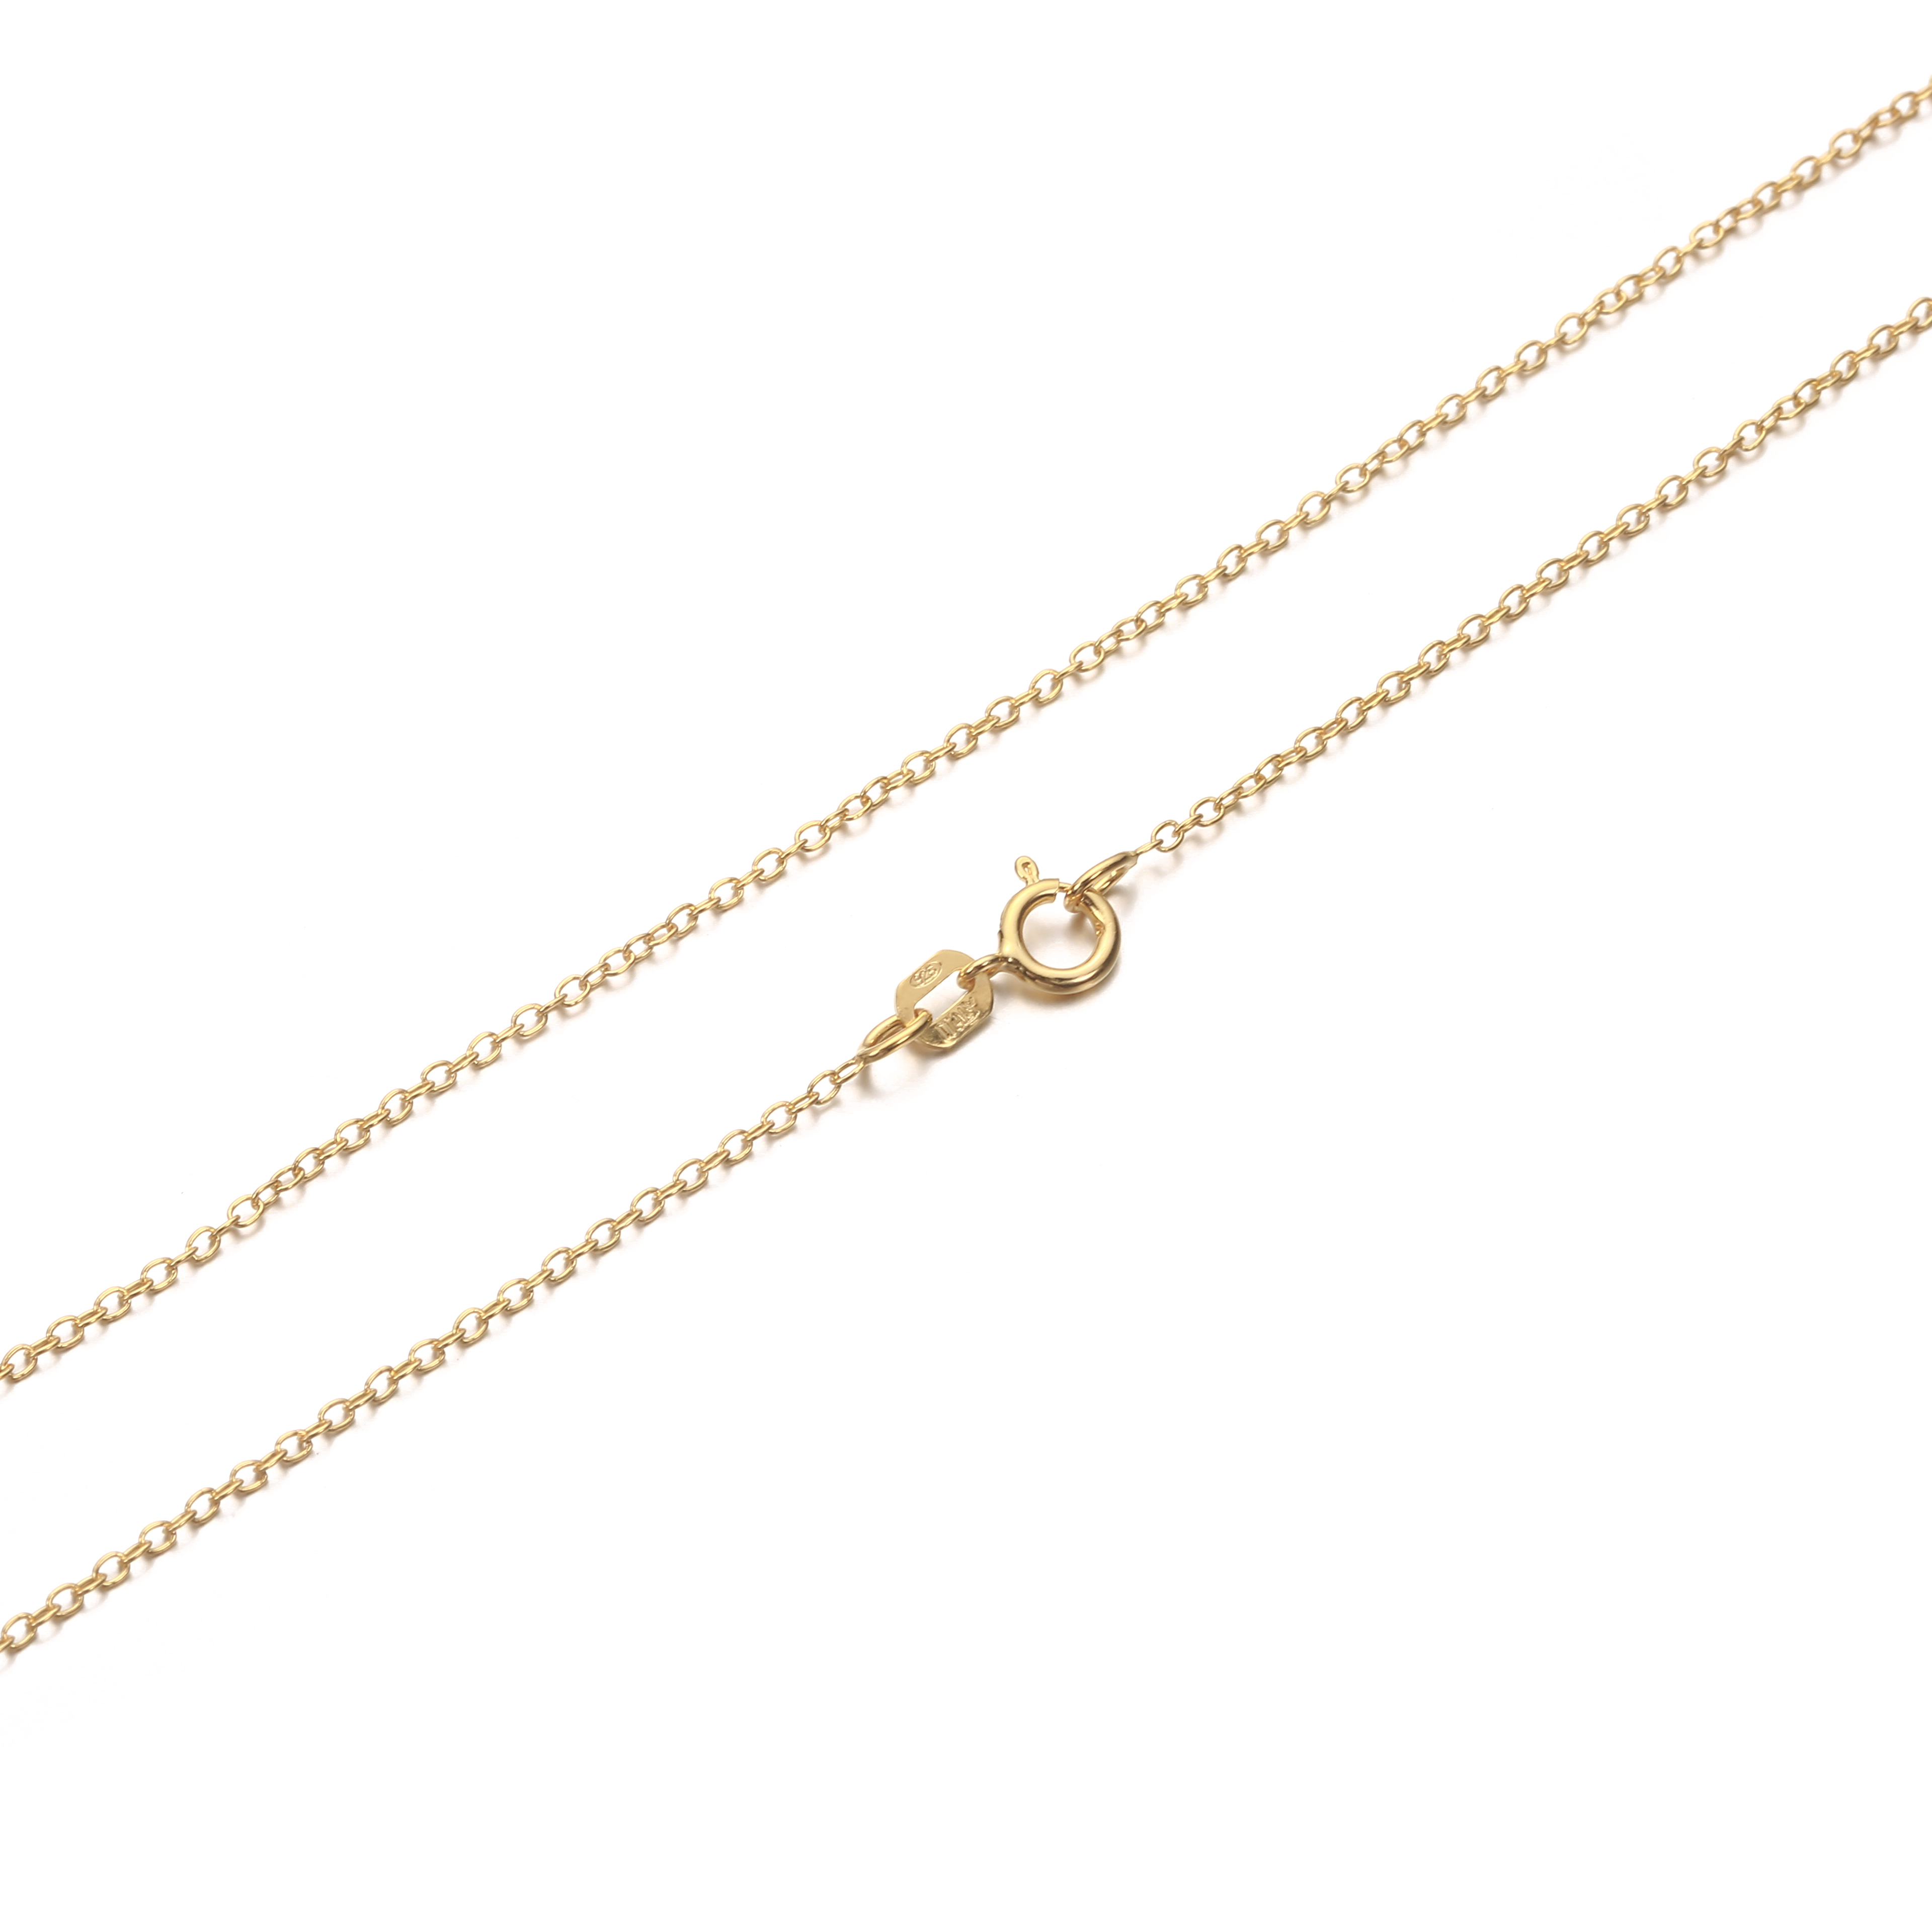 Details About 14K Gold Plated 925 Sterling Silver Cable Chain Necklace  (View 11 of 25)